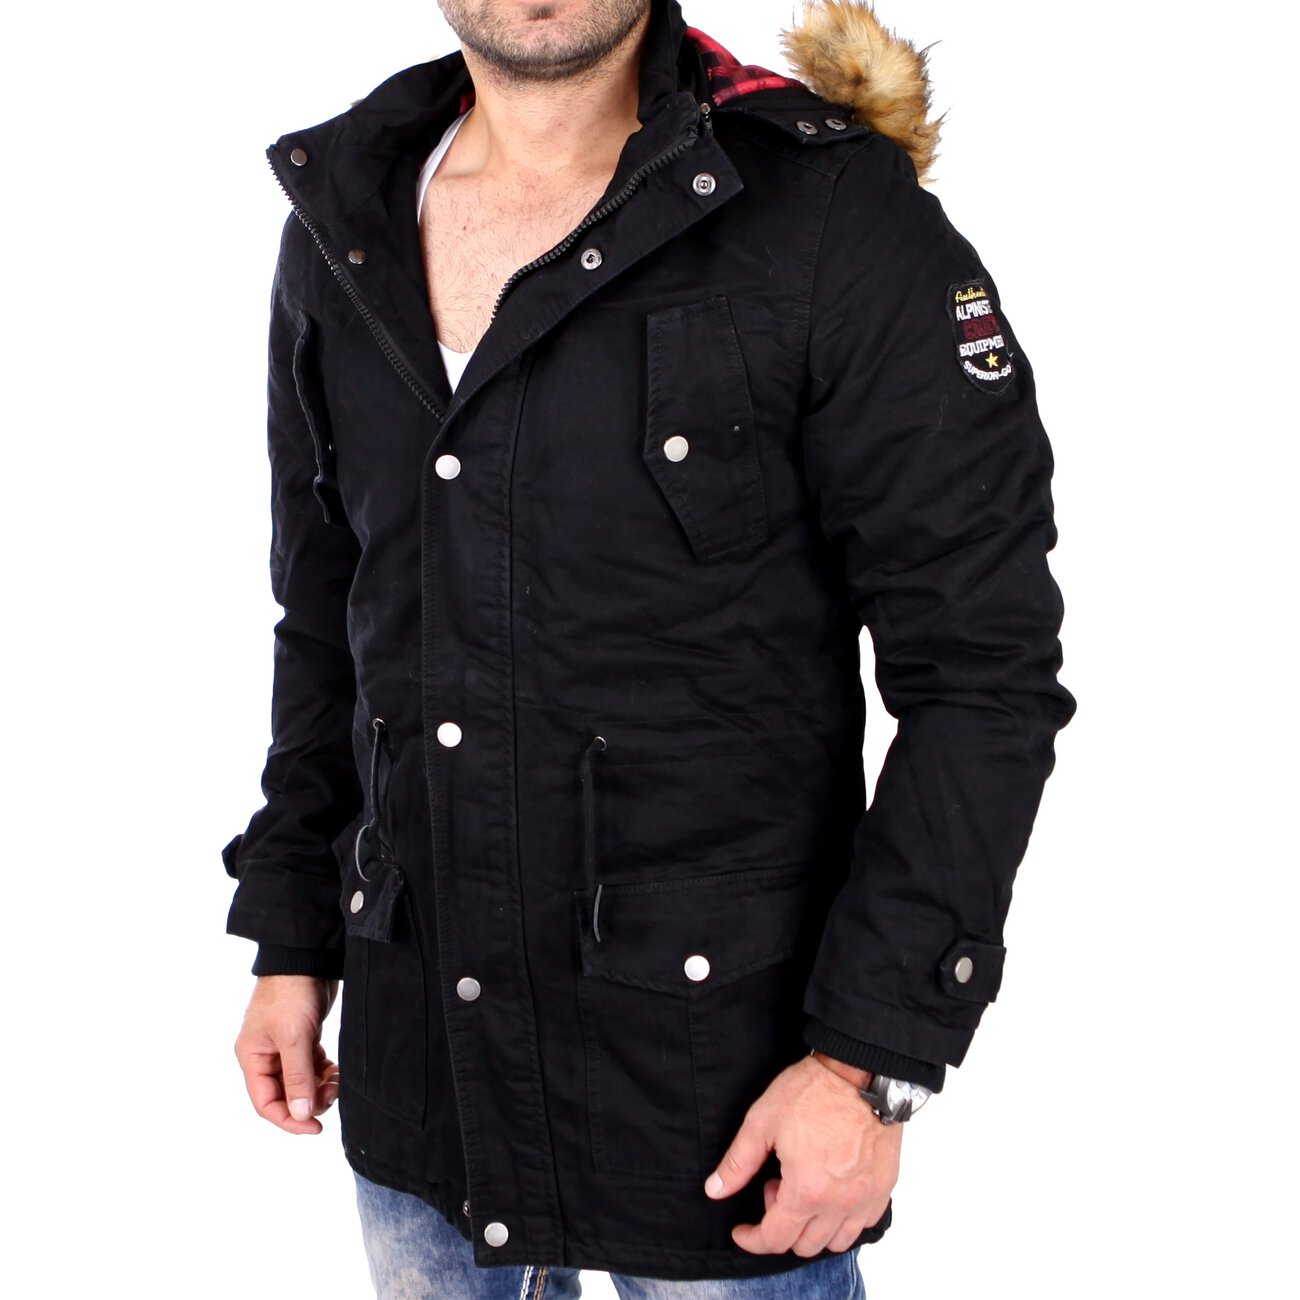 reslad winterjacke herren parka jacke mit kapuze und fell rs 505 schw. Black Bedroom Furniture Sets. Home Design Ideas